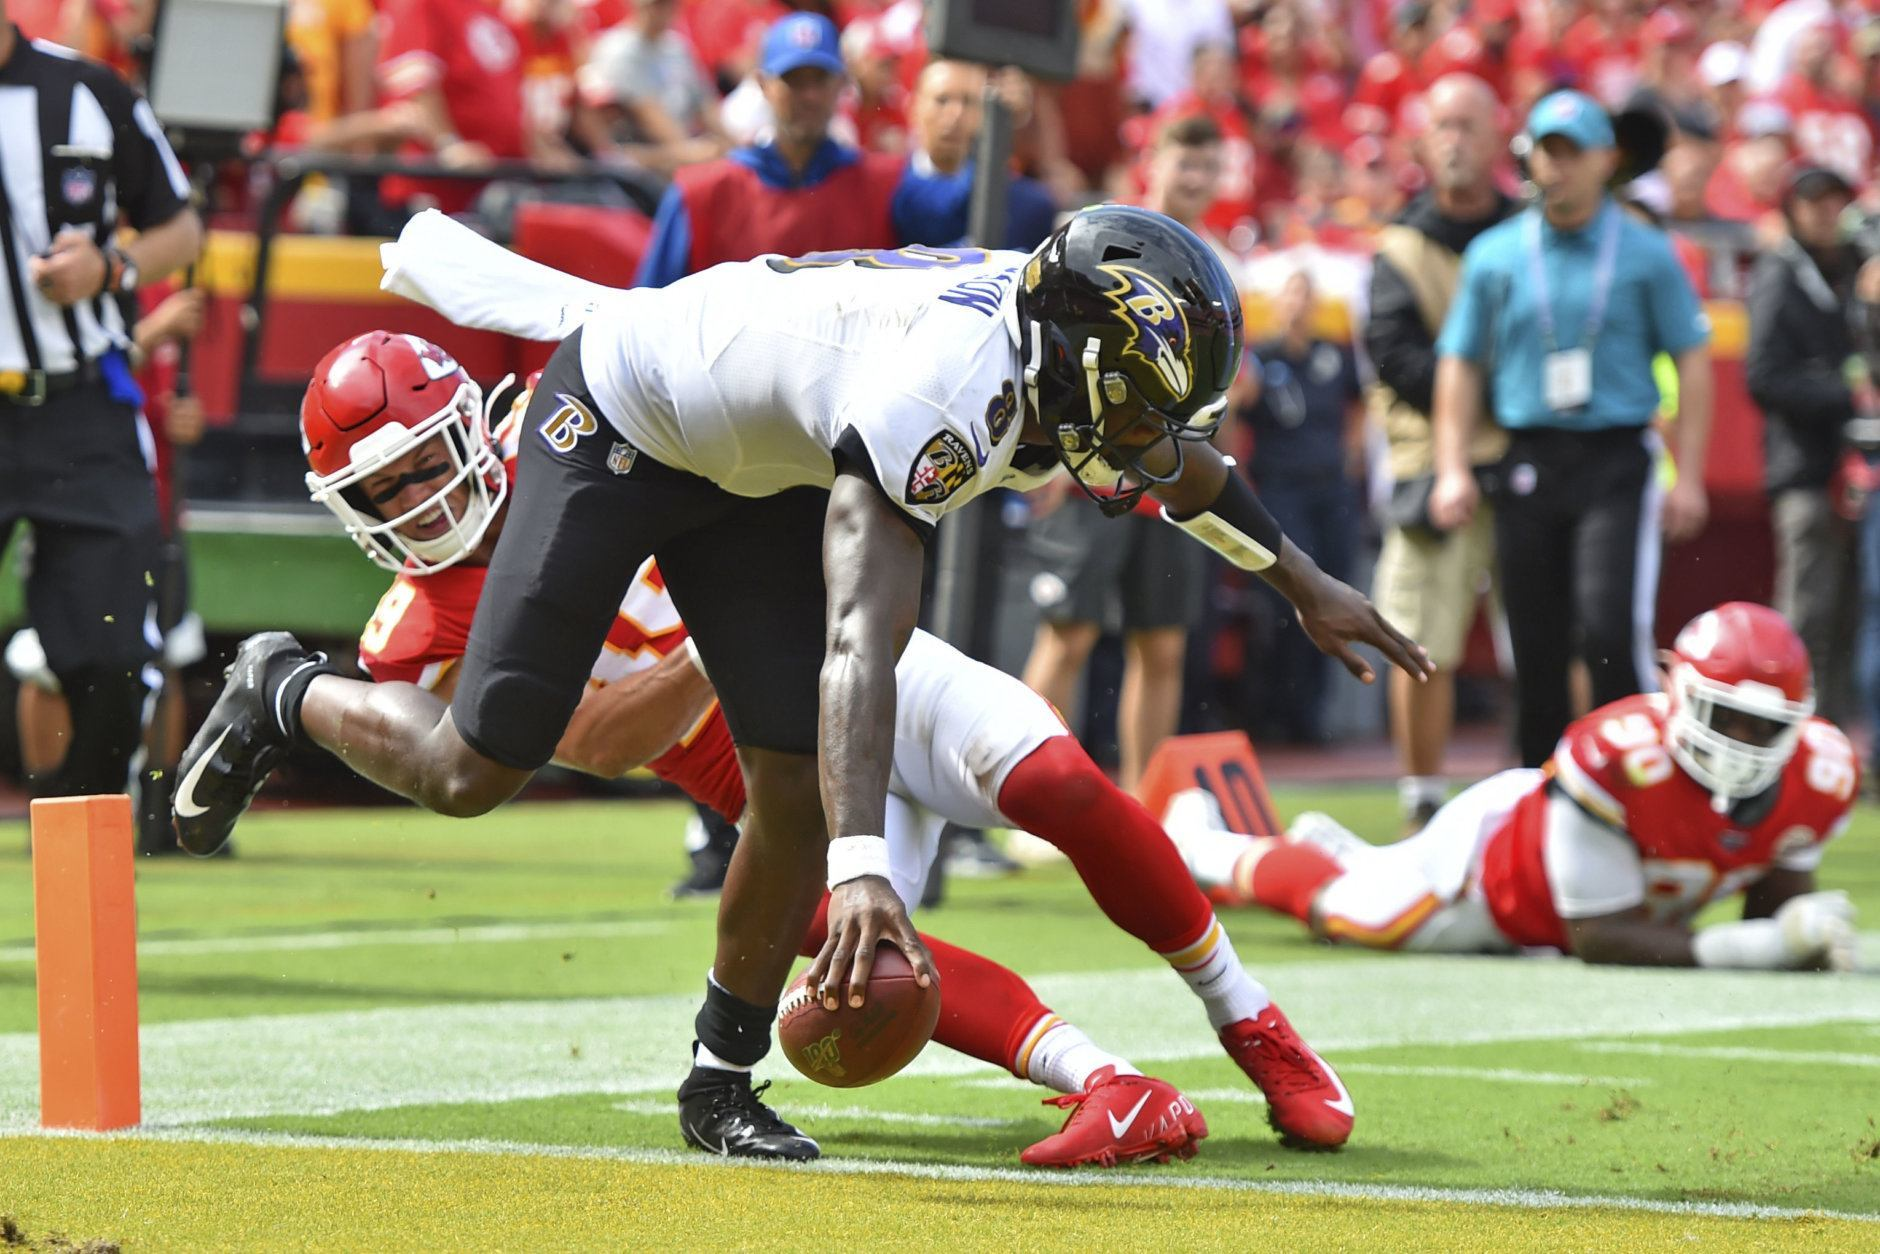 "<p><b><i>Ravens 28</i></b><br /> <b><i>Chiefs 33</i></b></p> <p>If Patrick Mahomes vs. Lamar Jackson is <a href=""https://www.espn.com/nfl/story/_/id/27659993/dc-floats-lamar-mahomes-next-peyton-brady"" target=""_blank"" rel=""noopener"" data-saferedirecturl=""https://www.google.com/url?q=https://www.espn.com/nfl/story/_/id/27659993/dc-floats-lamar-mahomes-next-peyton-brady&amp;source=gmail&amp;ust=1569294743340000&amp;usg=AFQjCNFzDQxUoQE-fmL0410QAarcgu4glA"">the next Payton Manning vs. Tom Brady</a>, it sure wasn&#8217;t on Sunday. Jackson was held in check, while Mahomes is the first player to throw for 300 yards in 13 of his first 20 career games and joins Brady as the only players with 300-yard, 3-TD and 0-INT stat lines in three straight games. Baltimore still has a ways to go before they&#8217;re on KC&#8217;s level — especially if John Harbaugh is going to undermine his own best efforts with <a href=""https://www.espn.com/nfl/story/_/id/27679227/ravens-harbaugh-defends-bold-approach-loss"" target=""_blank"" rel=""noopener"">goofy point-after strategies</a>.</p>"